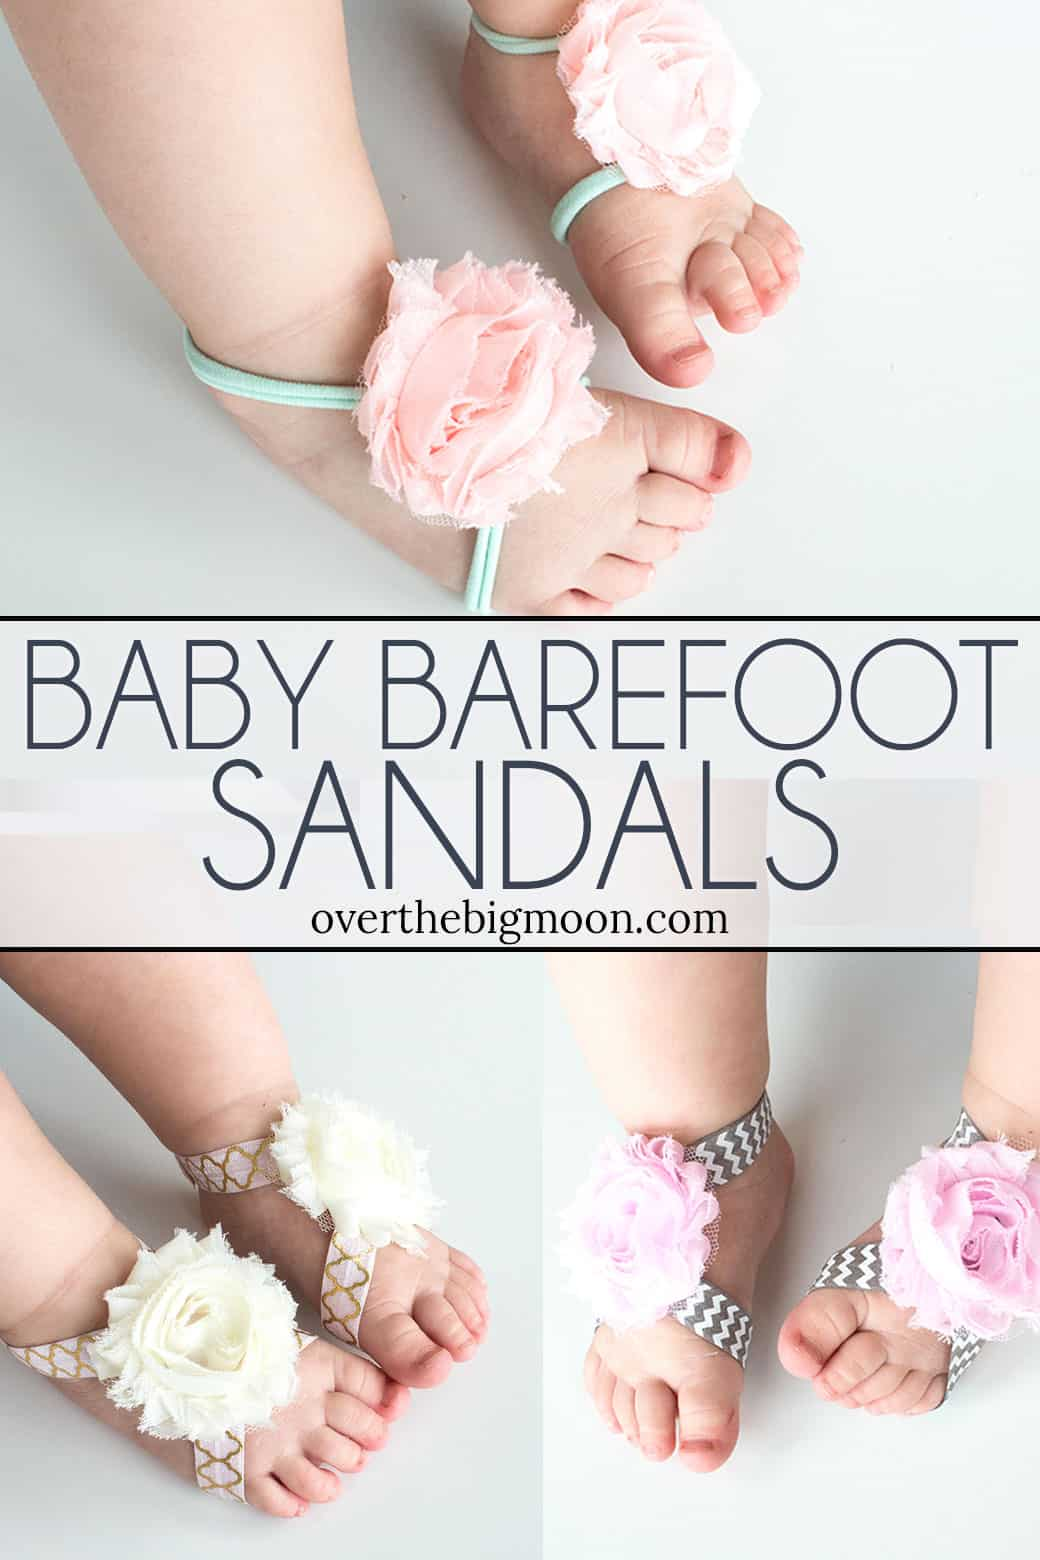 These No Sew Baby Barefoot Sandals are perfect for those little newborn feet! These are perfect for newborn babies through 18 months! Full tutorial and video at overthebigmoon.com!